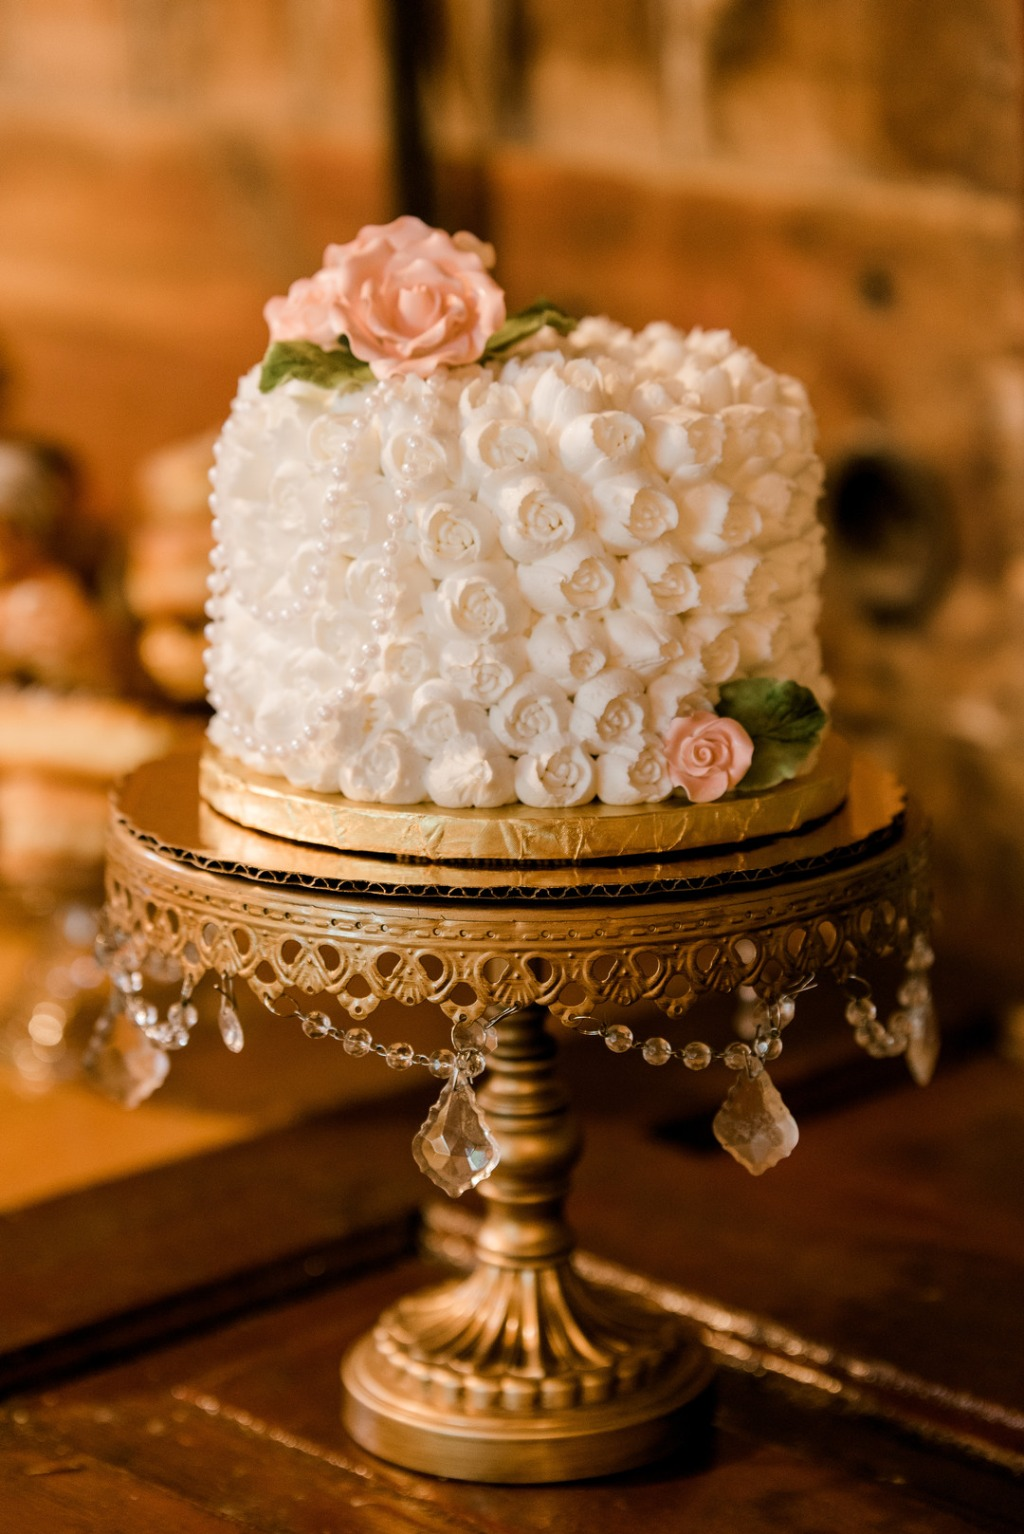 Pretty rosette wedding cake with pearls! Cake Designer: Grandma's Bakery // Antique Gold Chandelier Cake Stand: Opulent Treasures